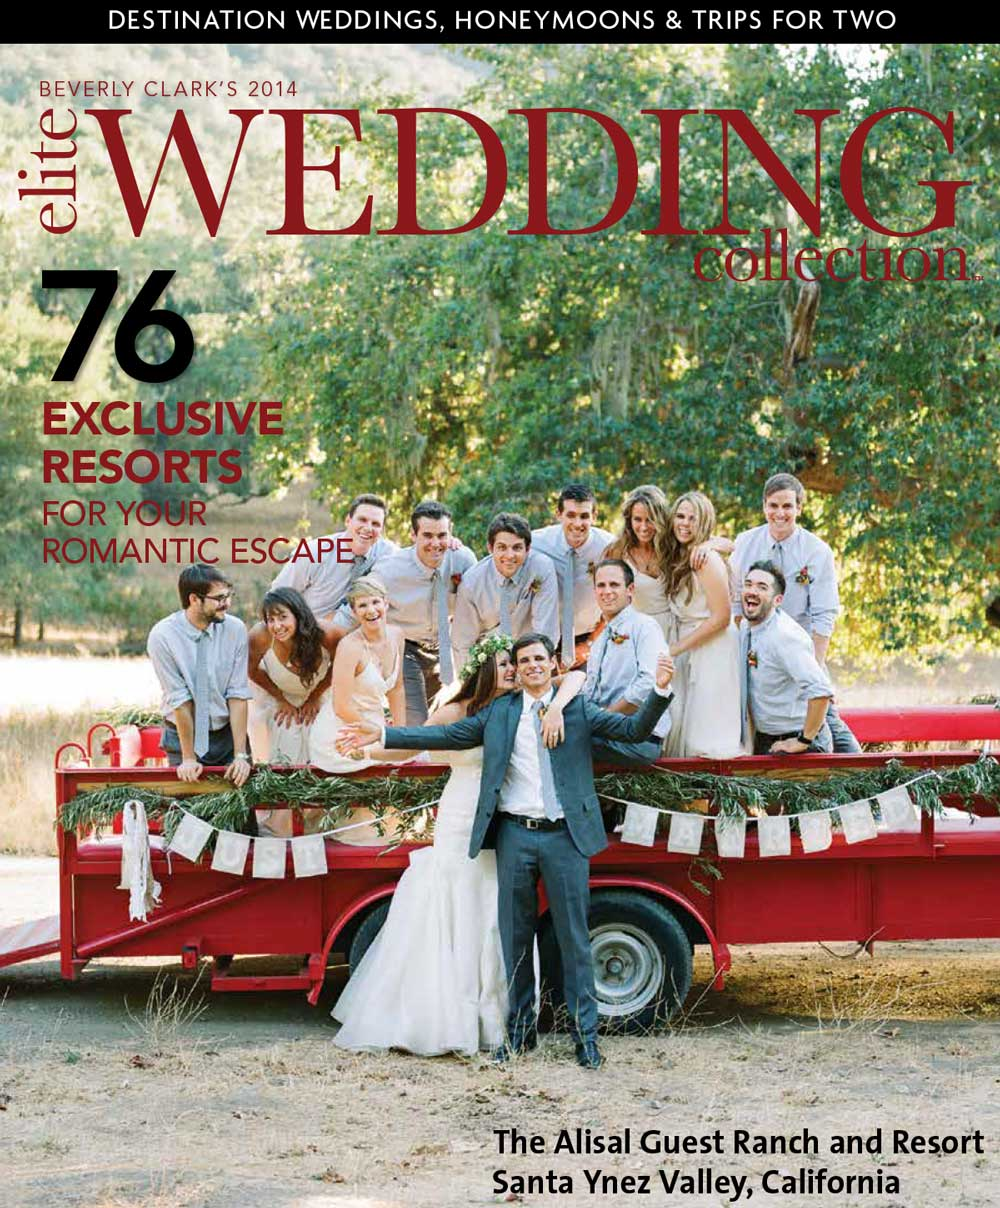 Alisal featured on the cover of Elite Weddings magazine